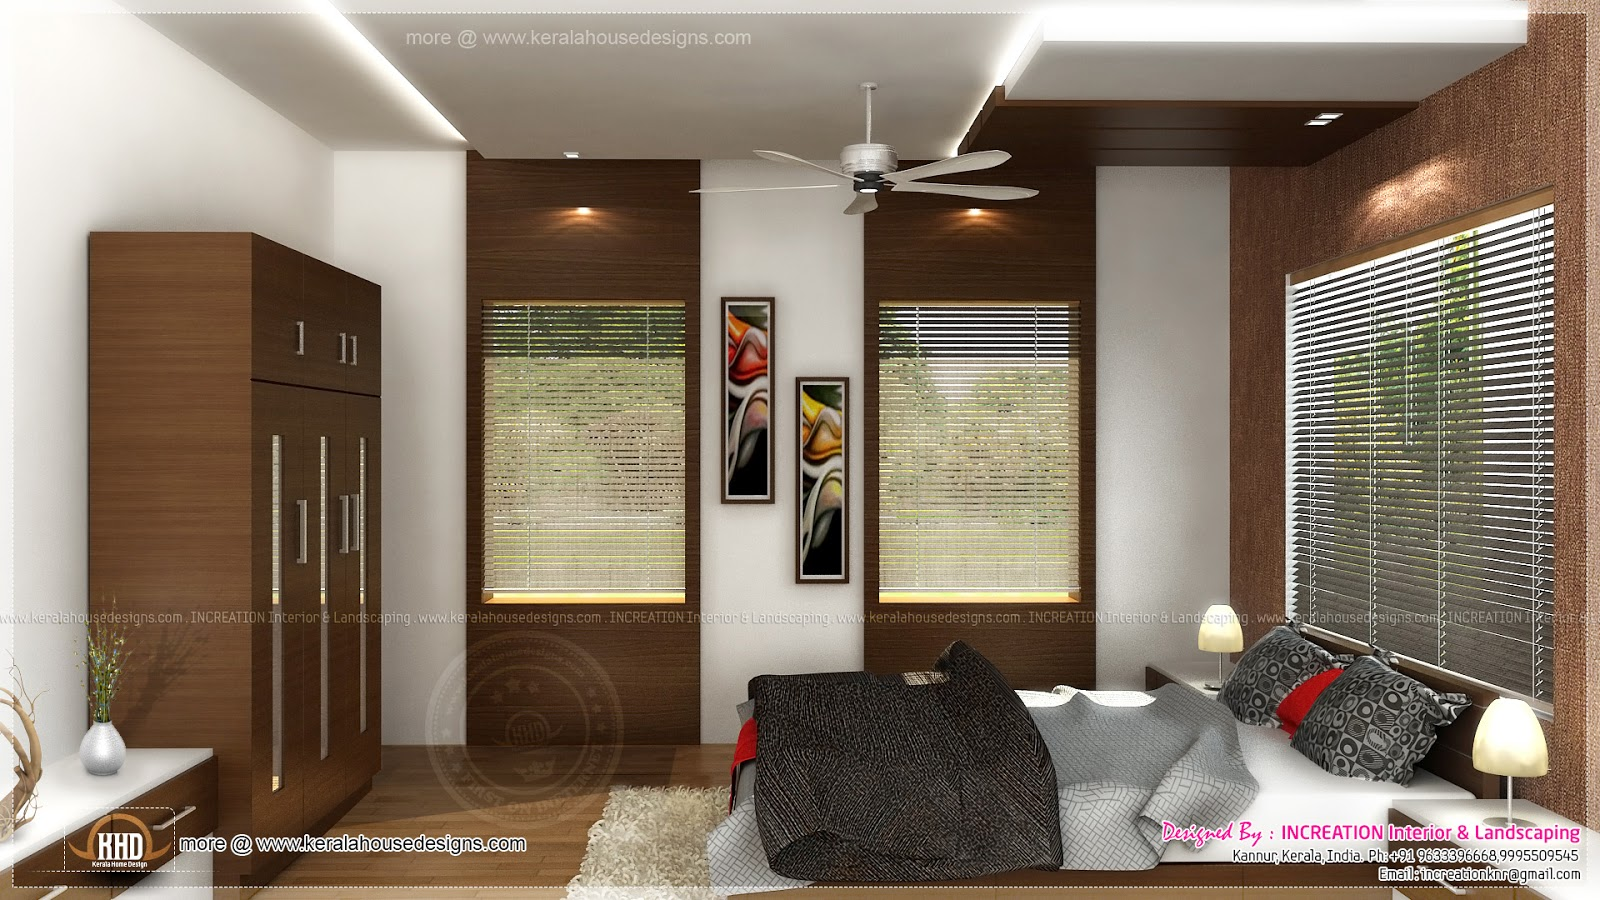 Bedroom design kerala style home decoration live for Kerala home interior